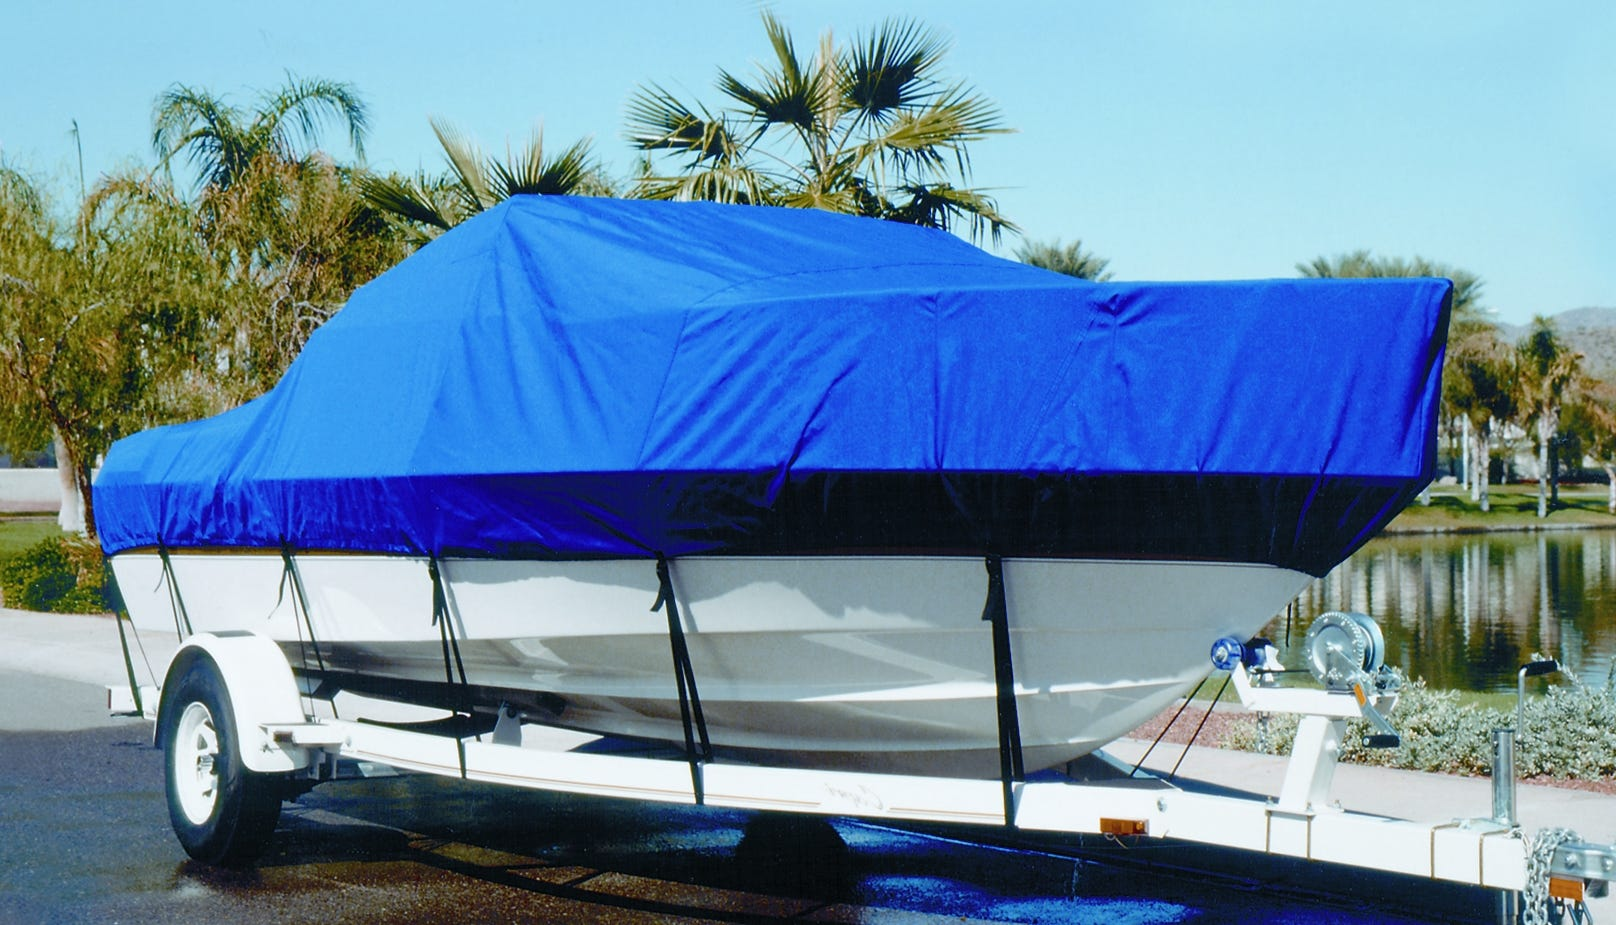 All About Boat Covers